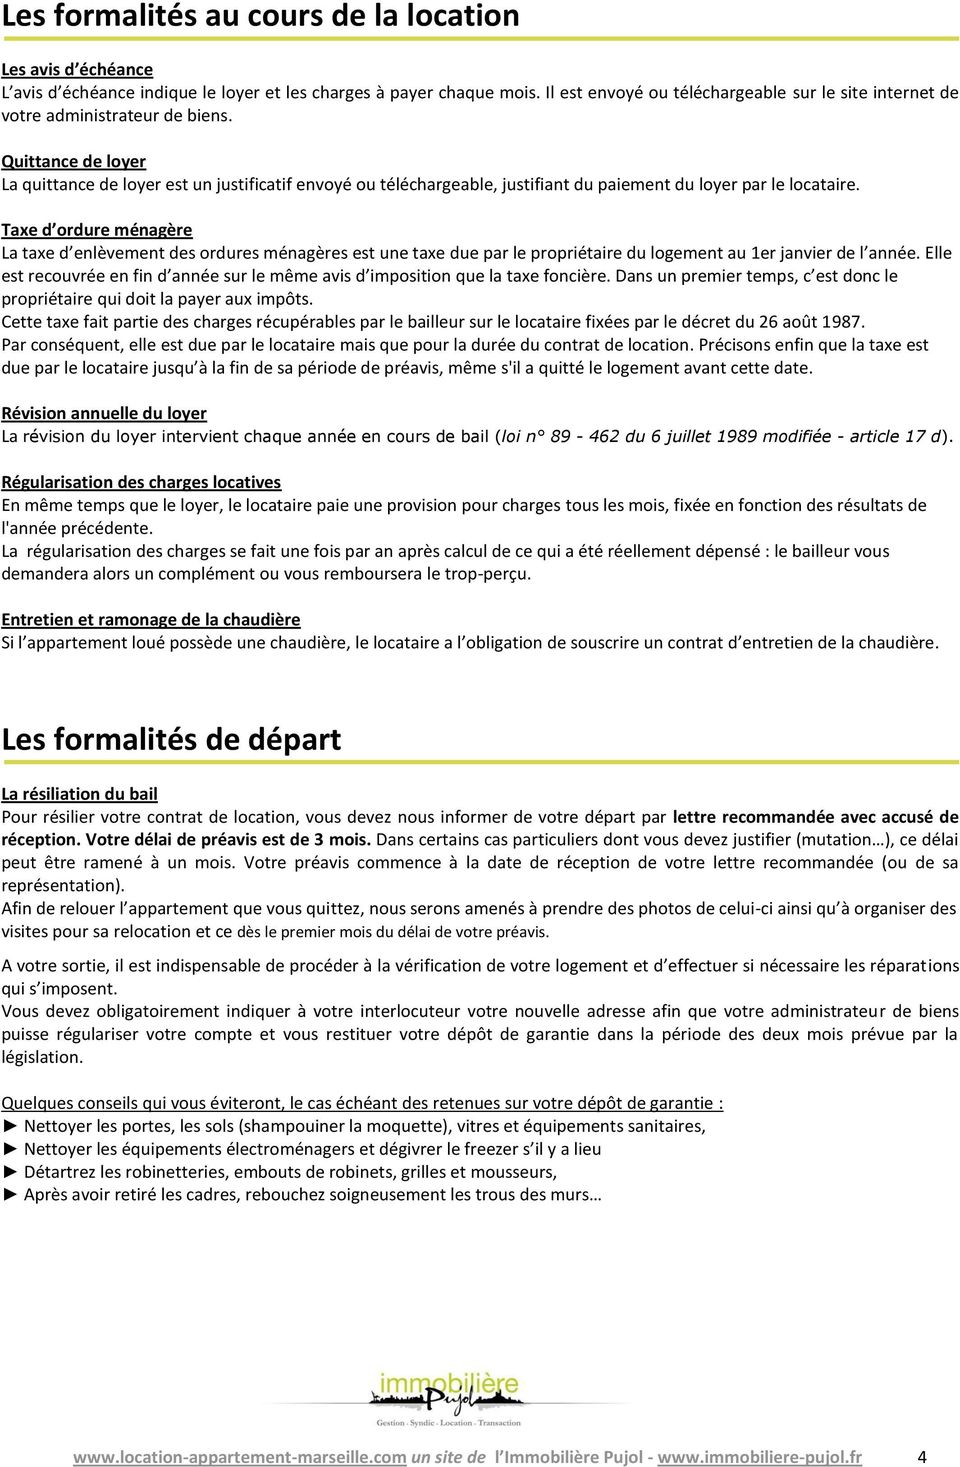 gestion syndic location transaction guide du locataire pdf. Black Bedroom Furniture Sets. Home Design Ideas